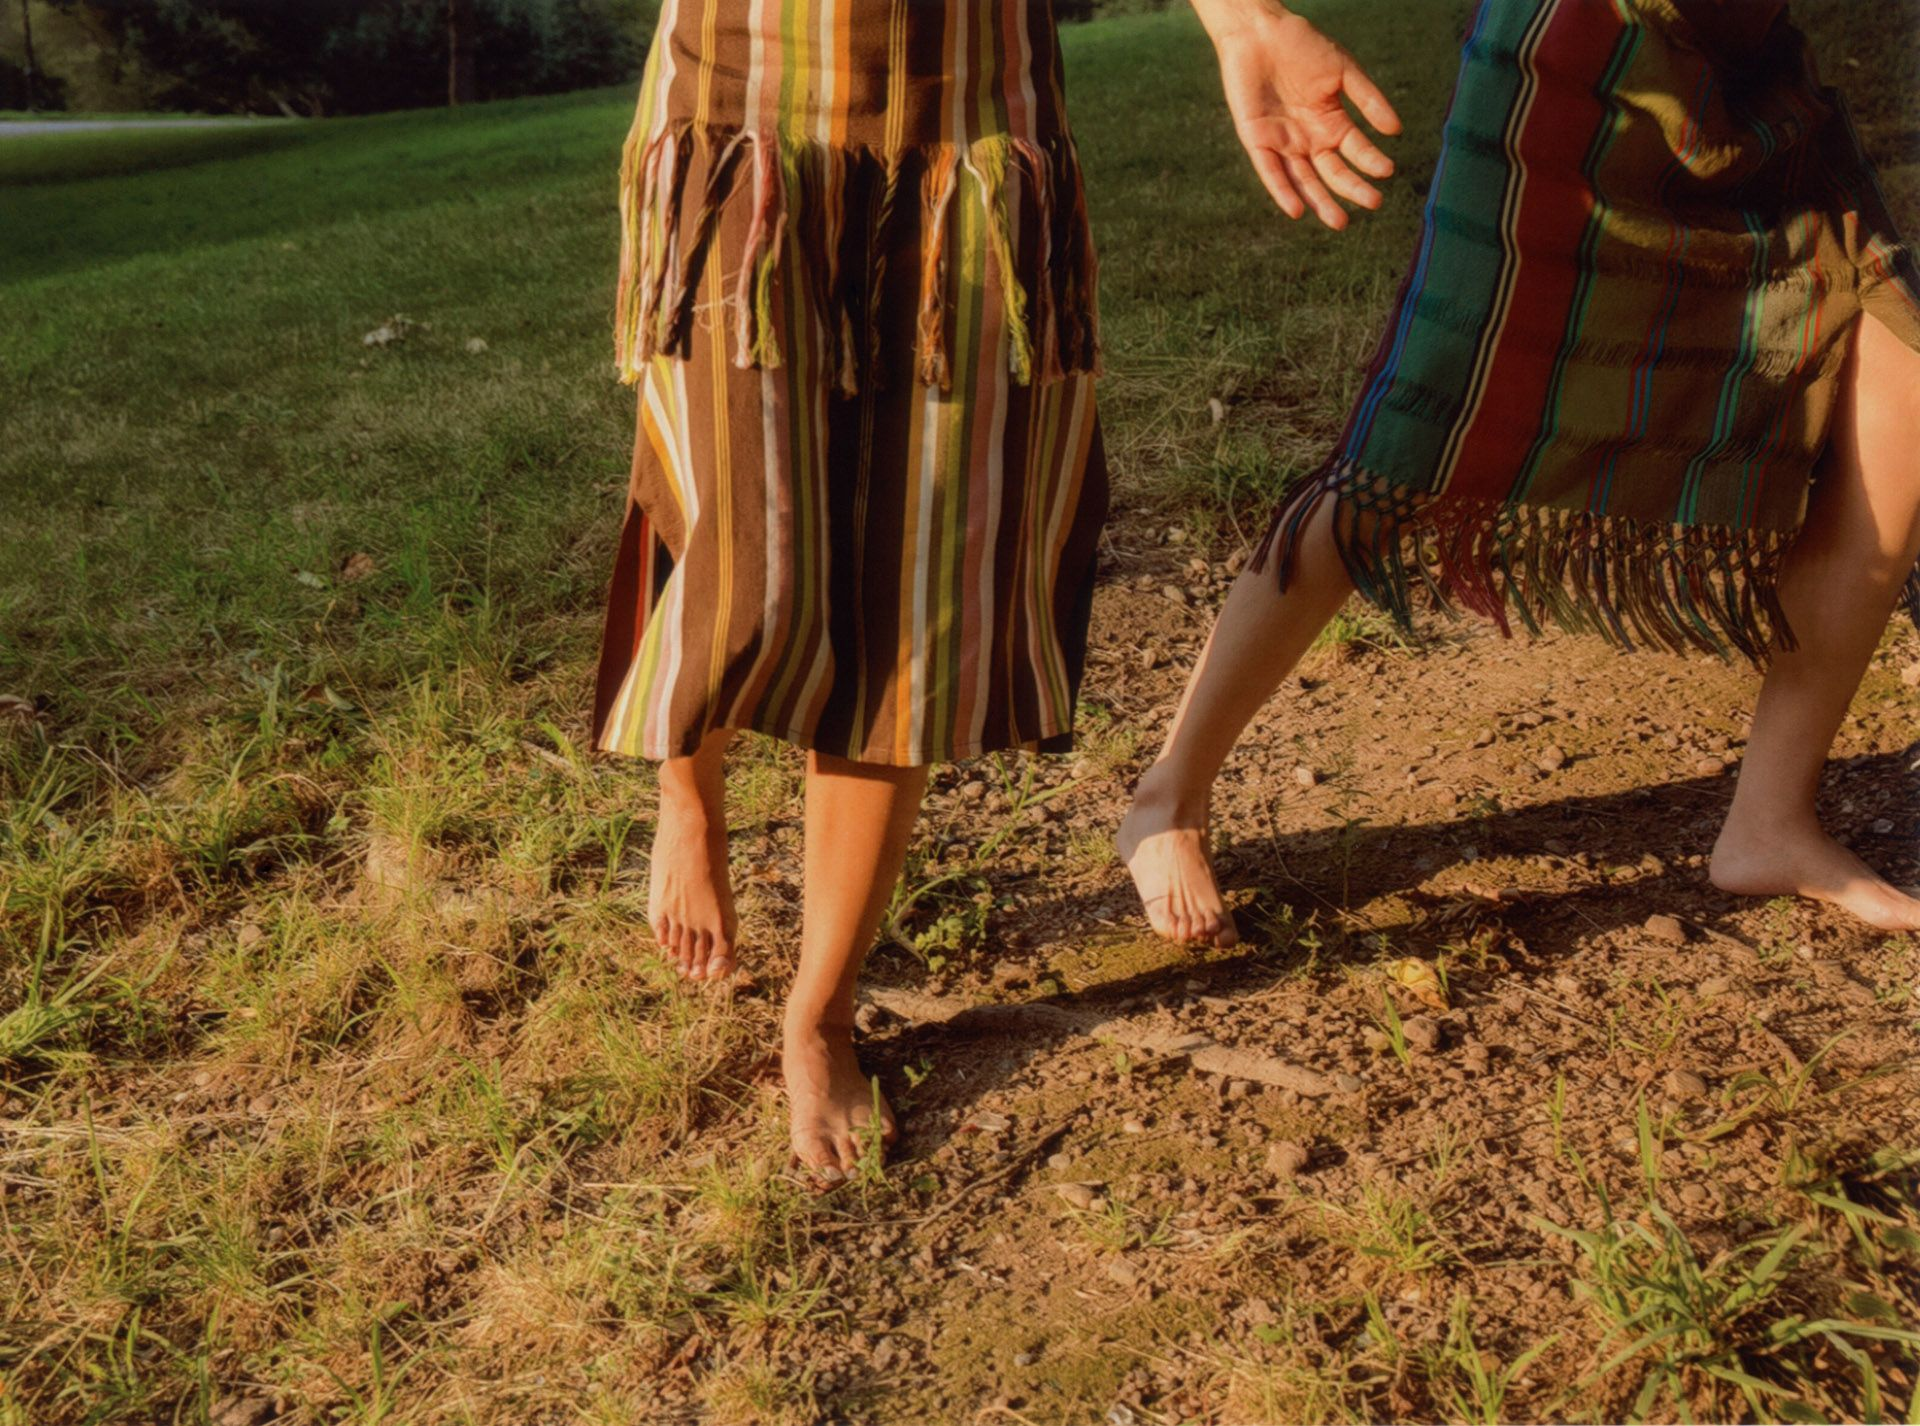 legs of models in nature by Oumayma B Tanfous for Sustainability Emerging Designers in Flaunt Magazine